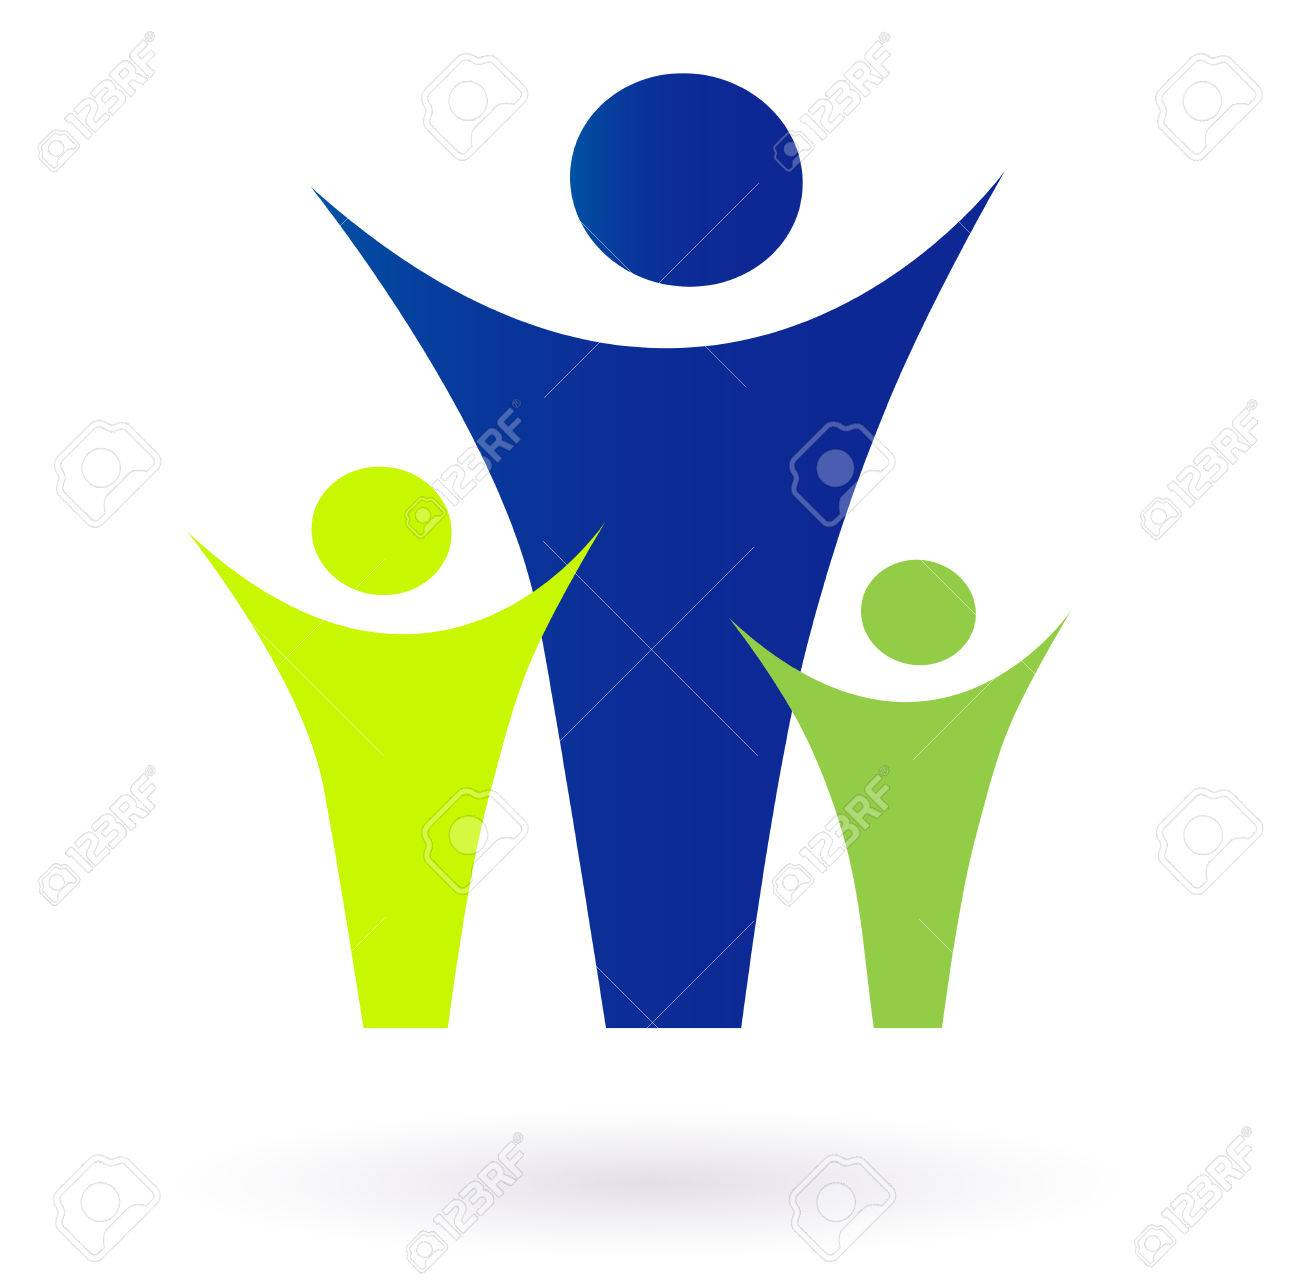 Family and community pictogram - adult and kids. Vector Illustration. Stock Vector - 8168982